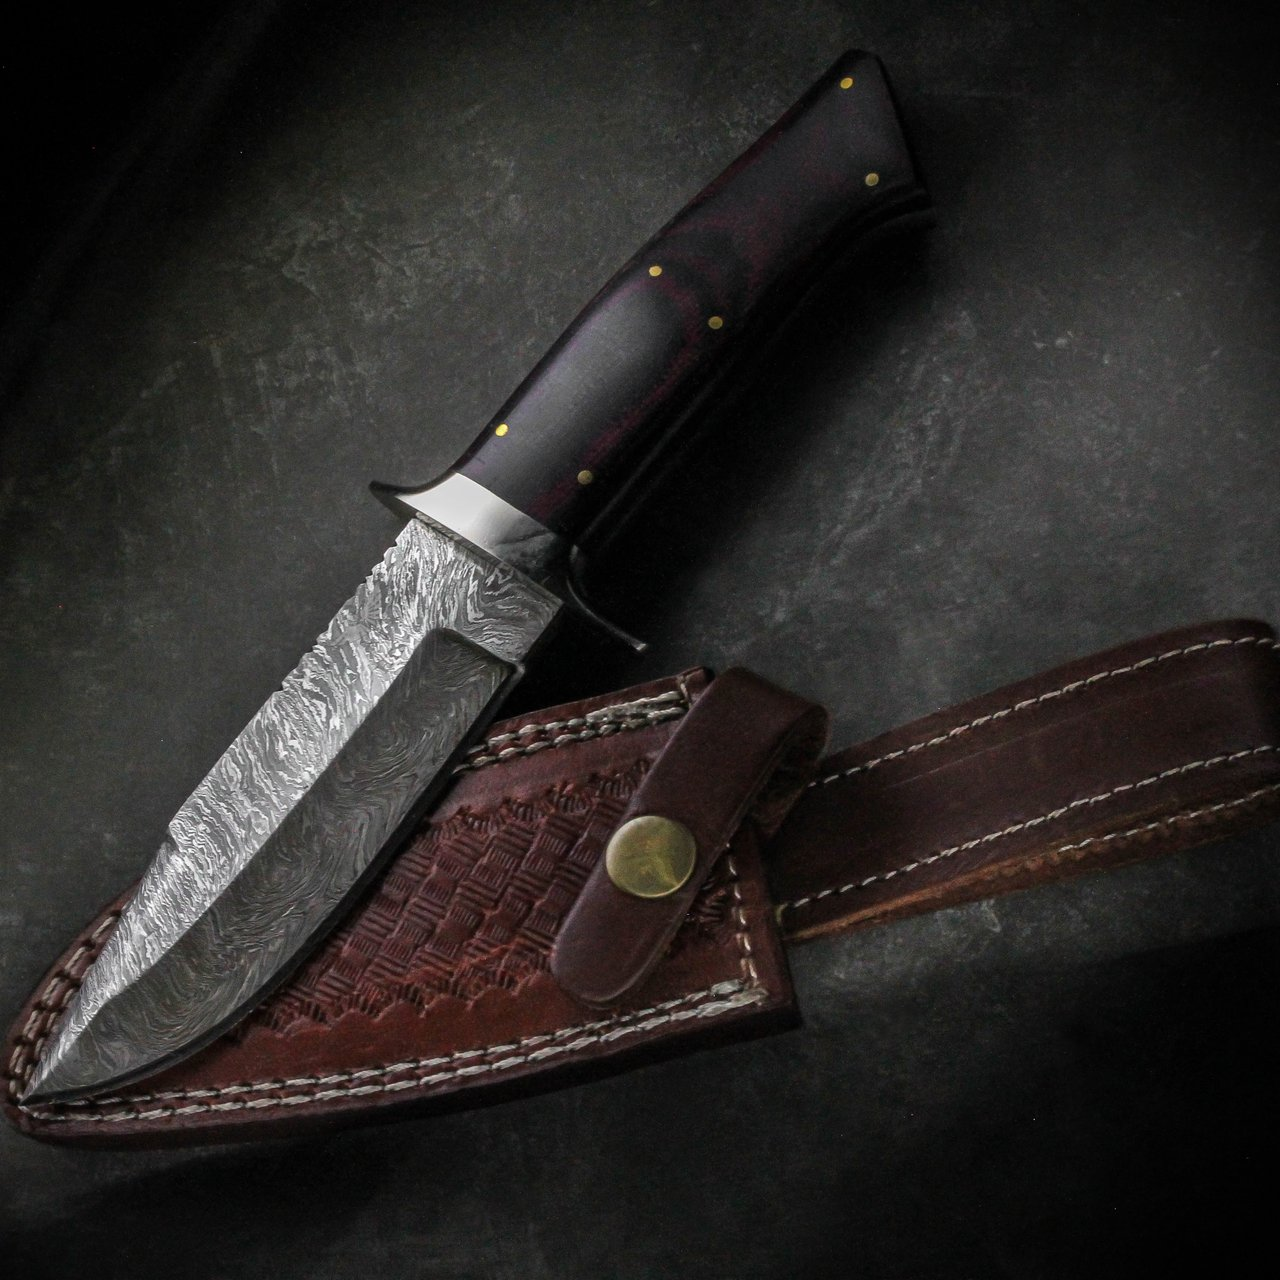 HTS-69 Damascus Handmade Knife